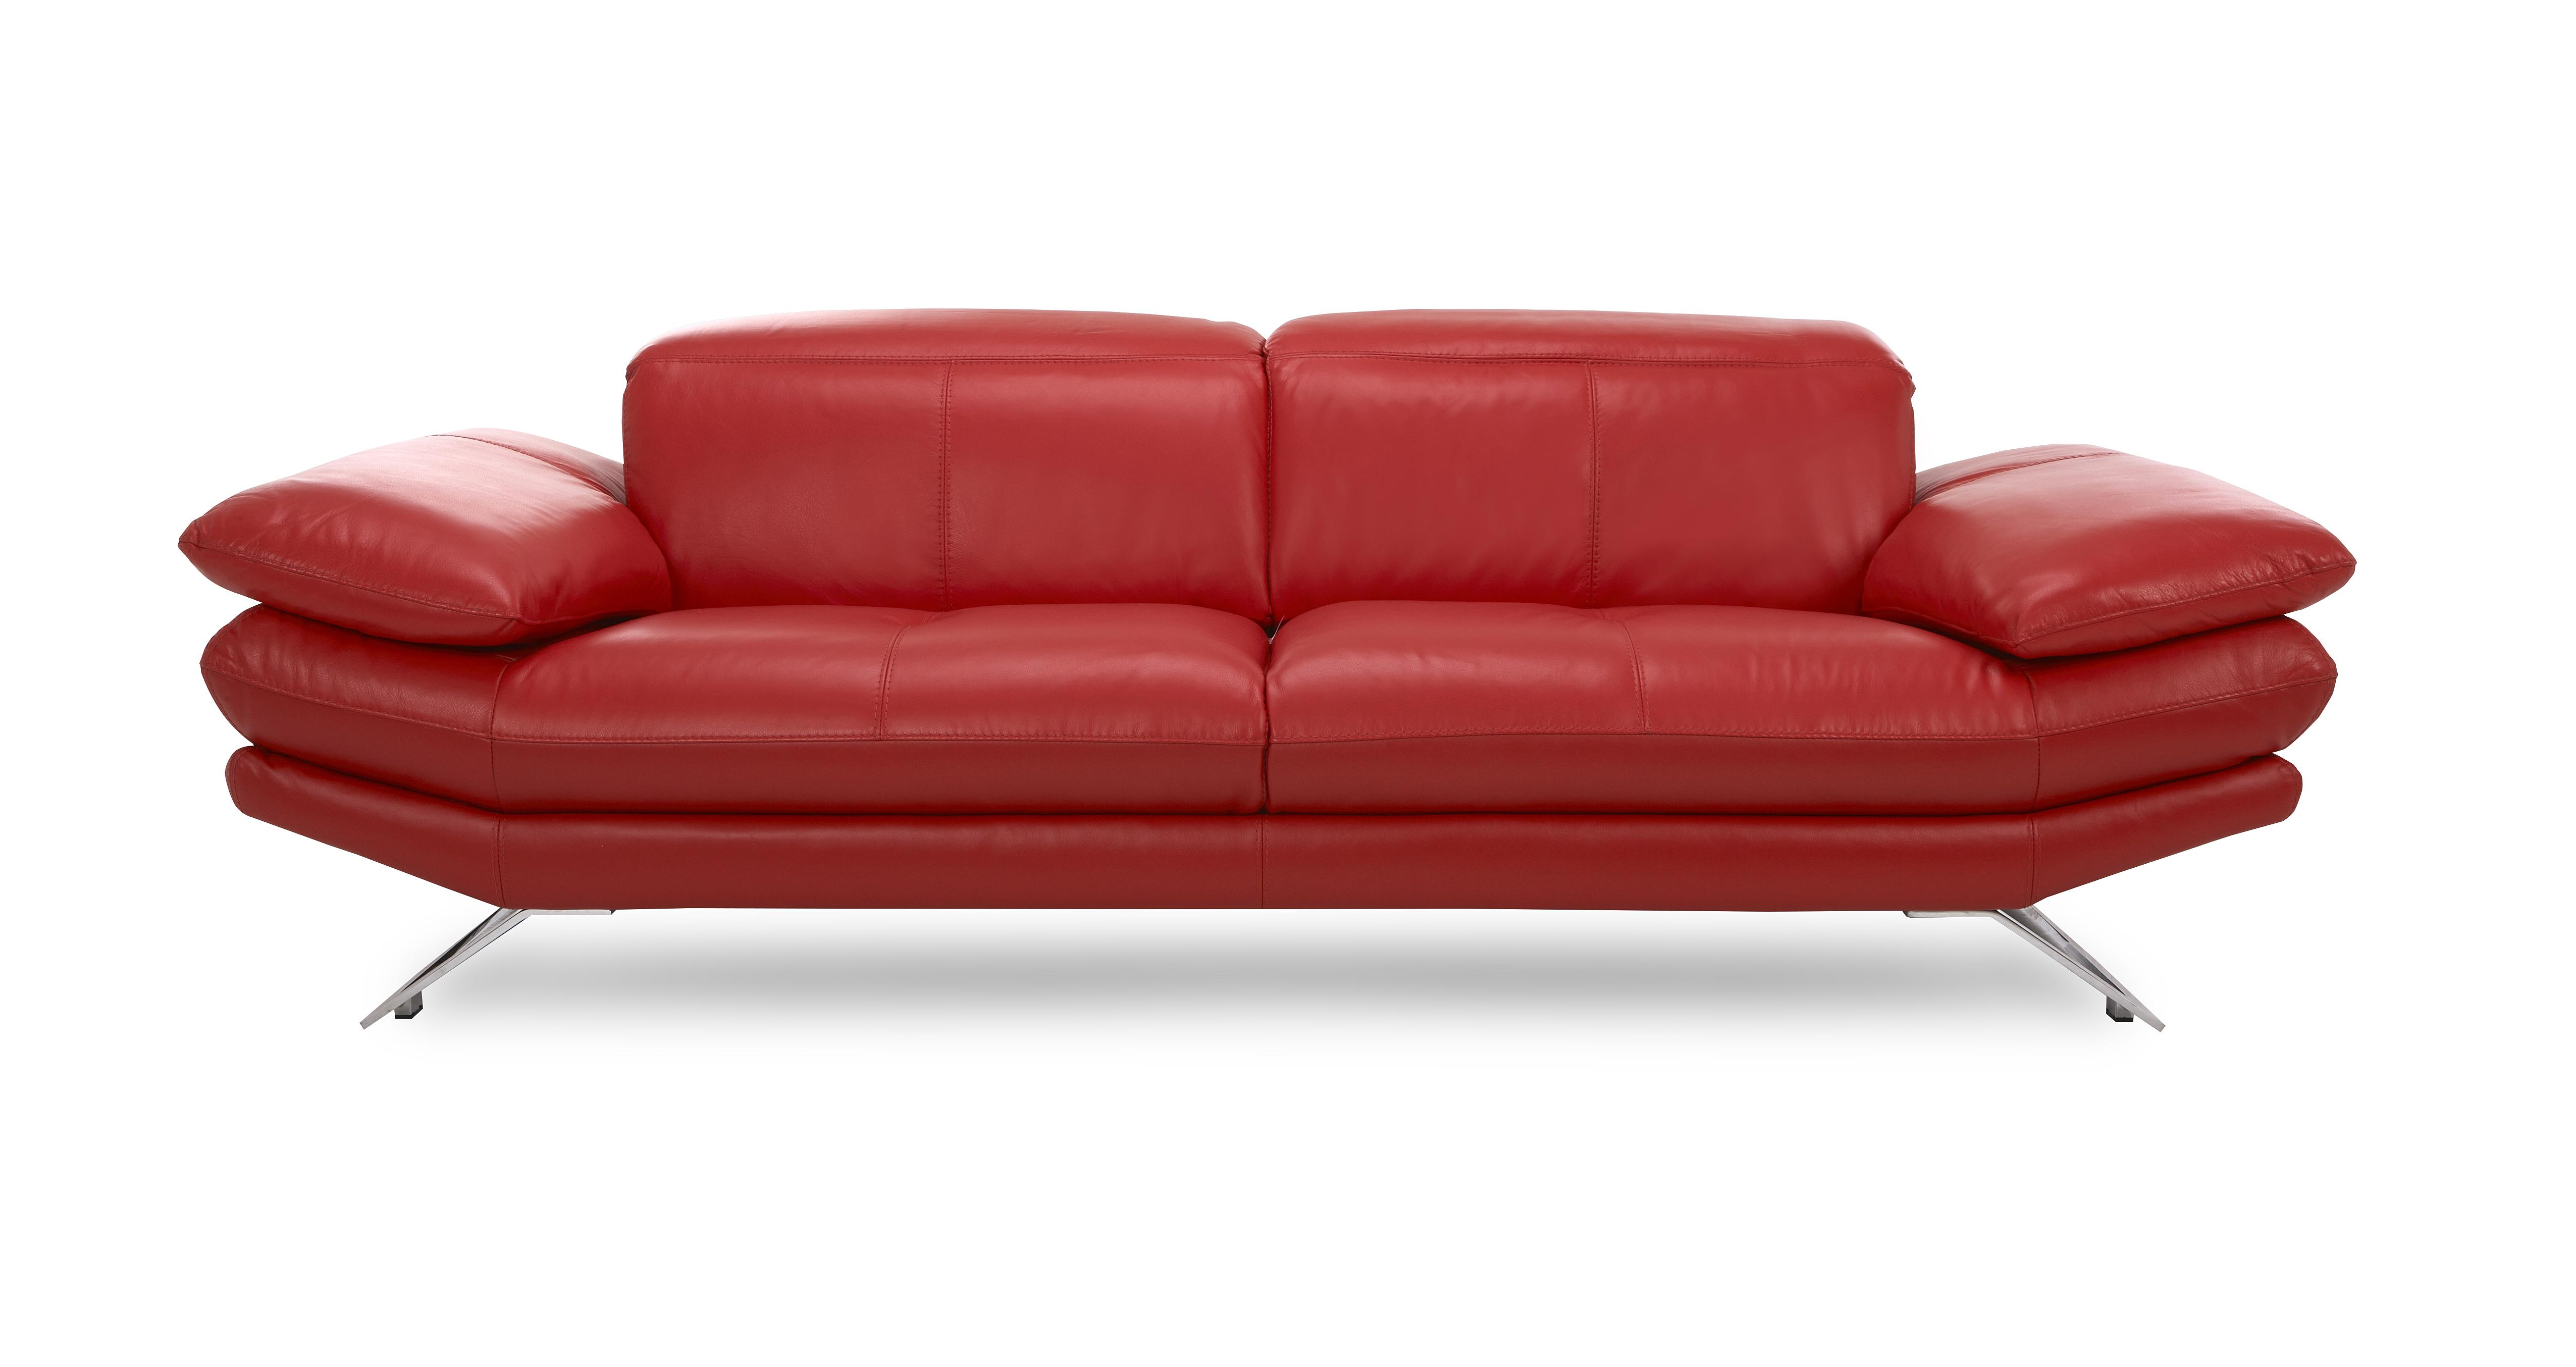 dfs red leather corner sofa bed twin sleeper mattress replacement brokeasshome